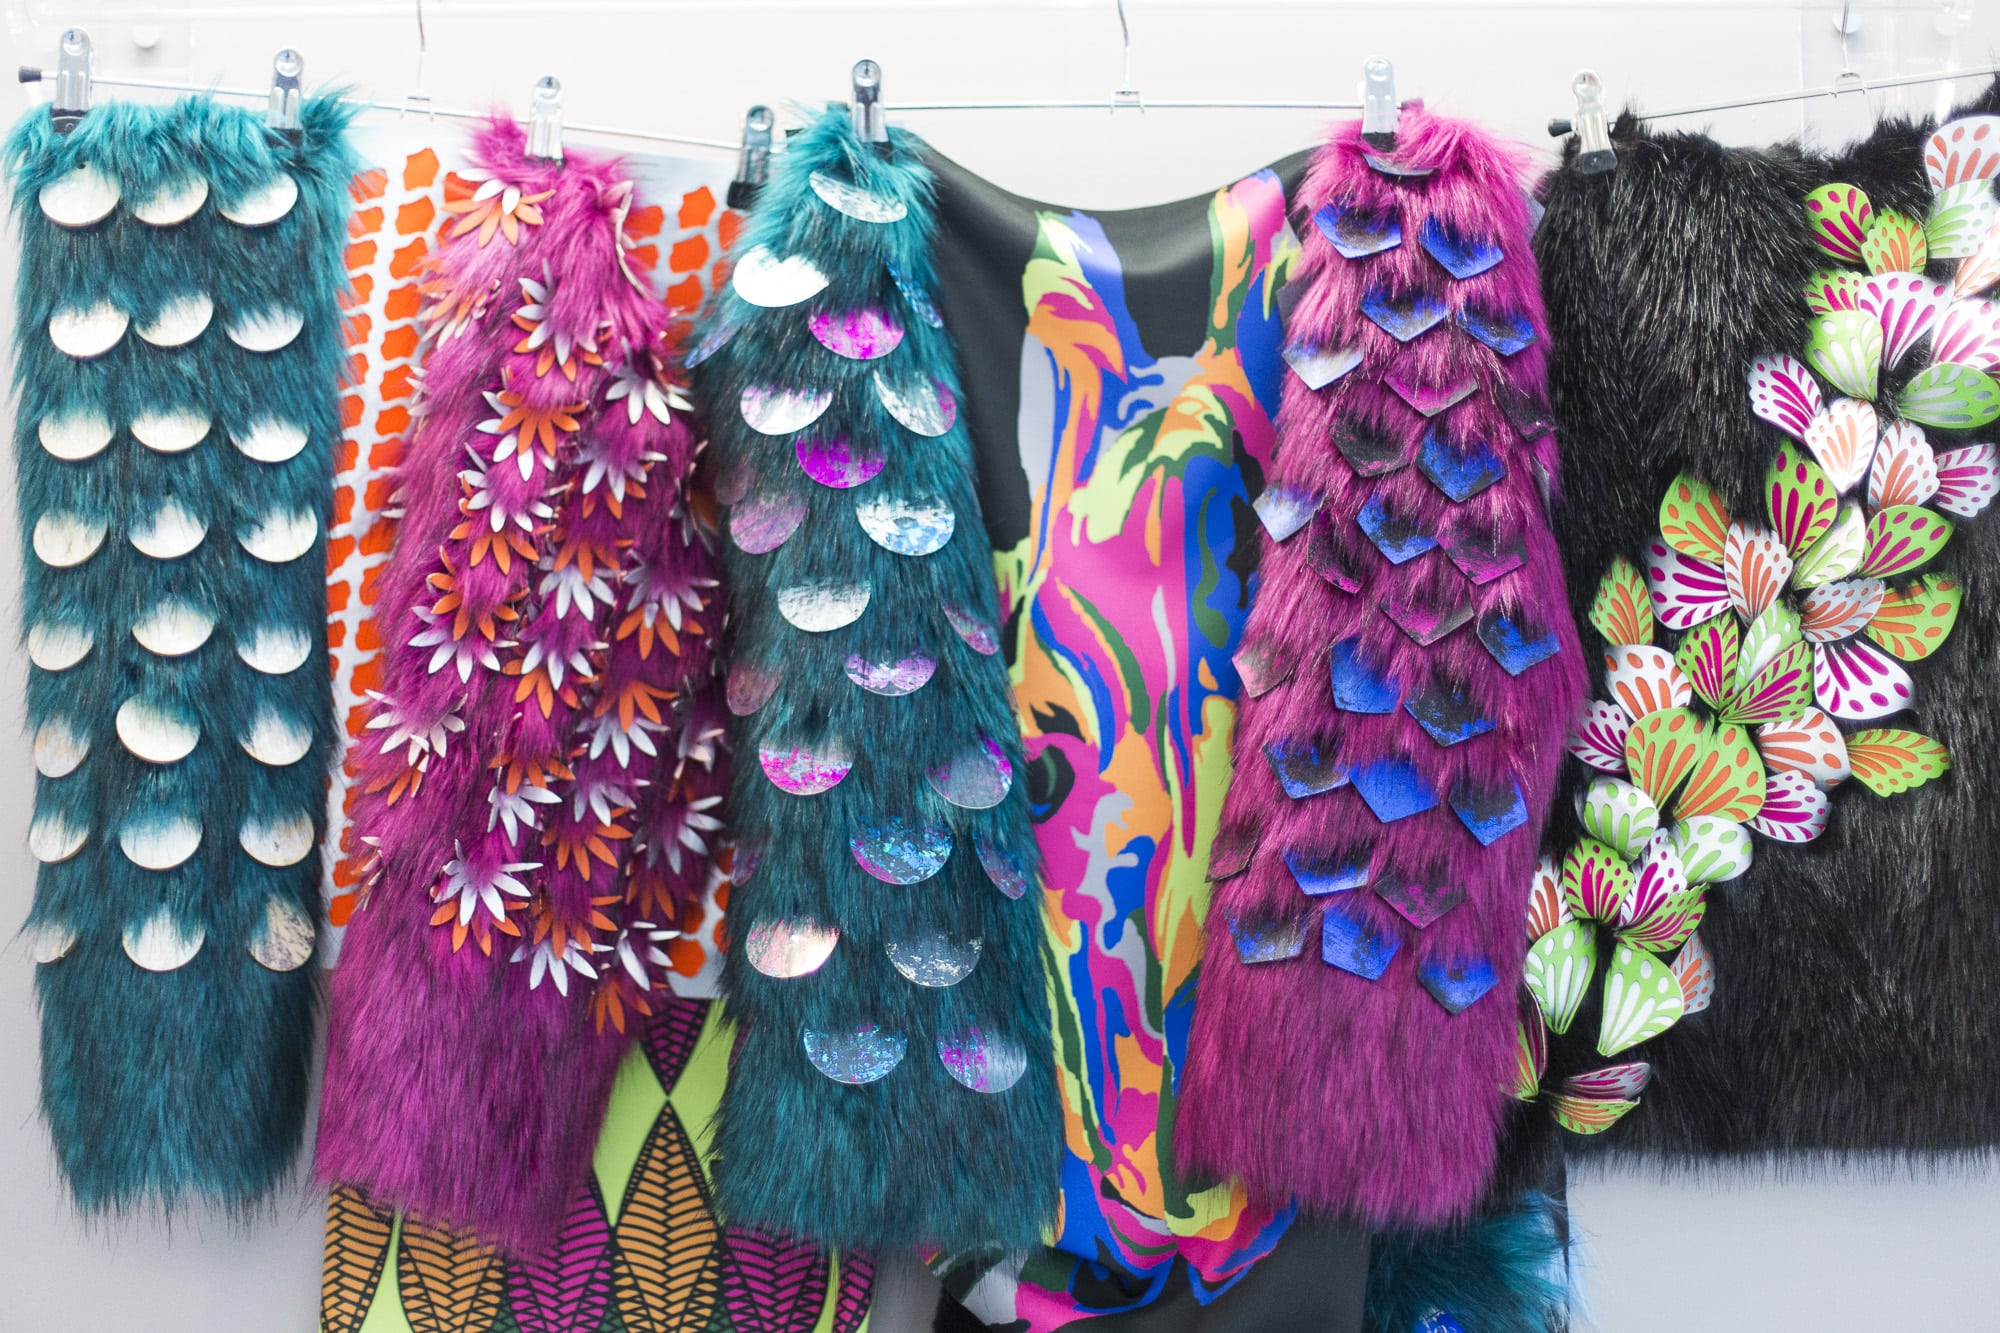 BA (Hons) Textiles at New Designers exhibition